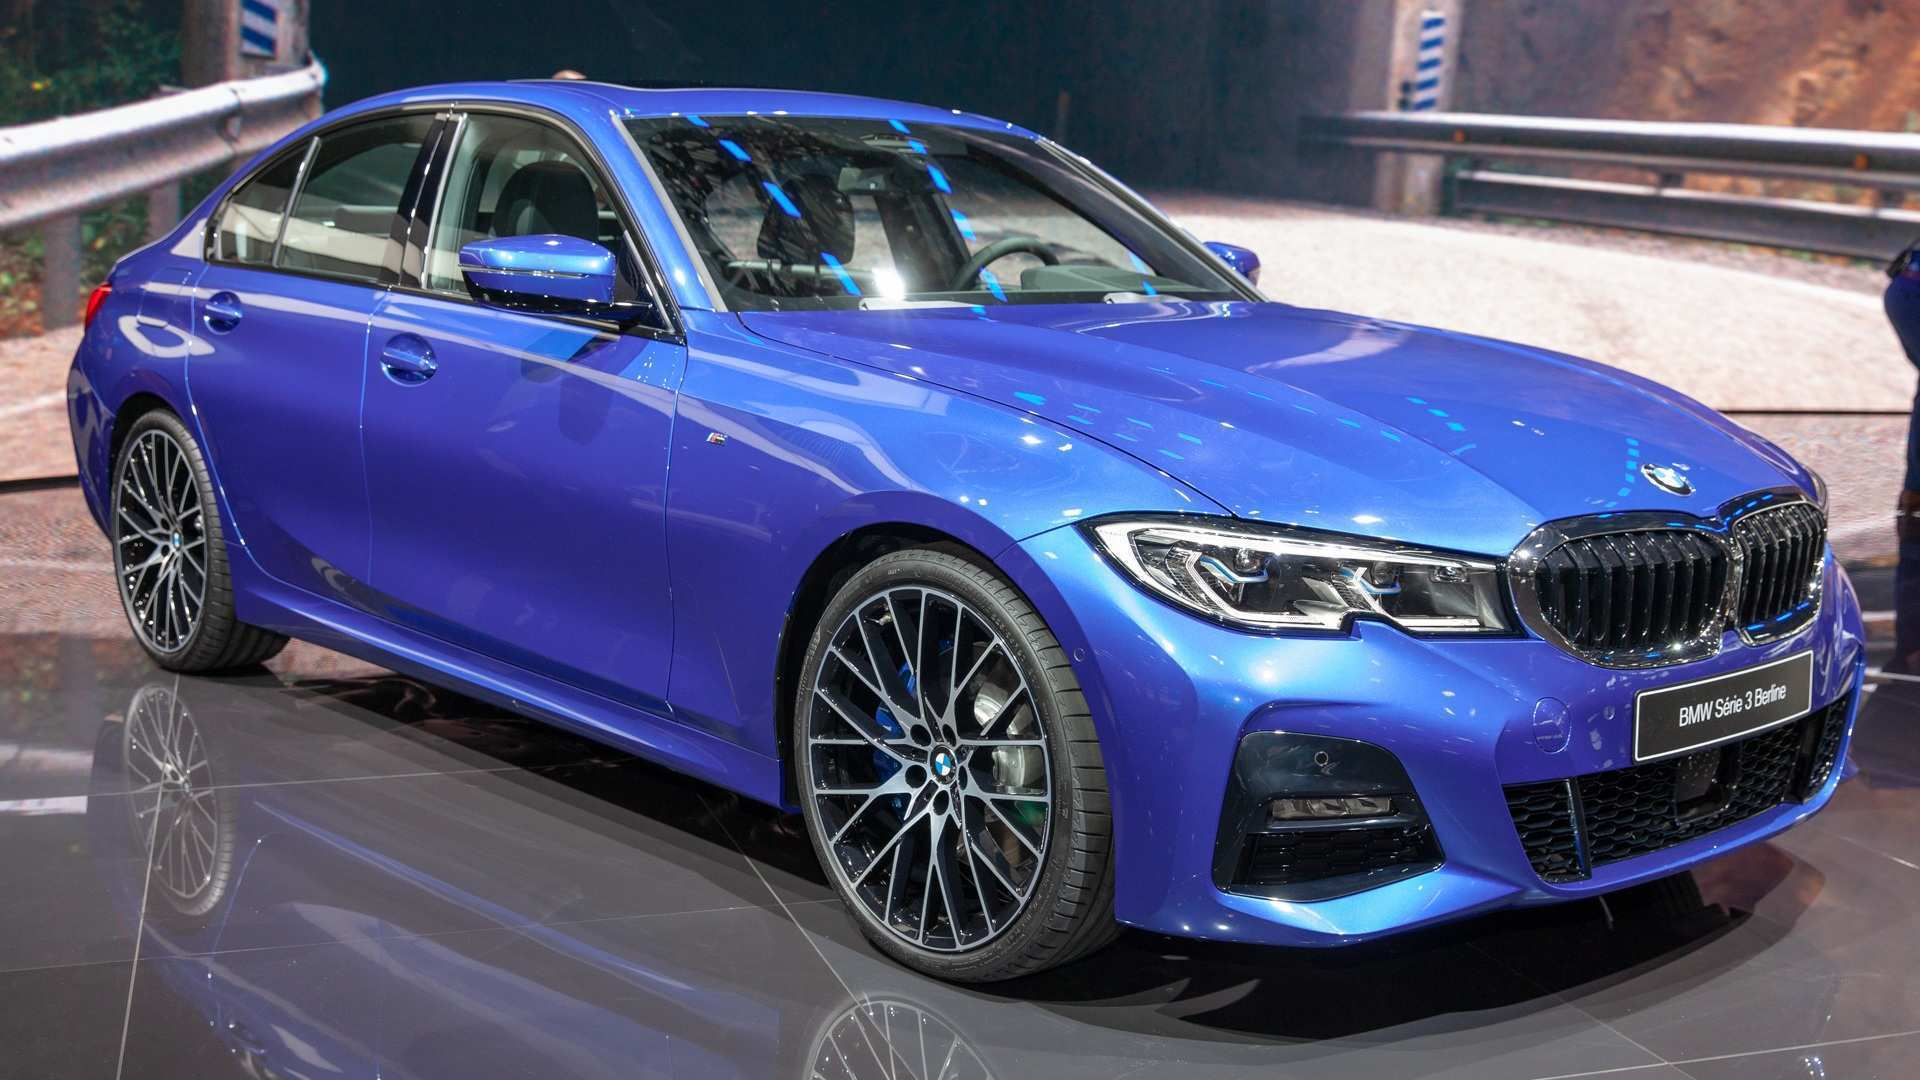 93 All New 2019 Bmw 3 Series Performance and New Engine for 2019 Bmw 3 Series